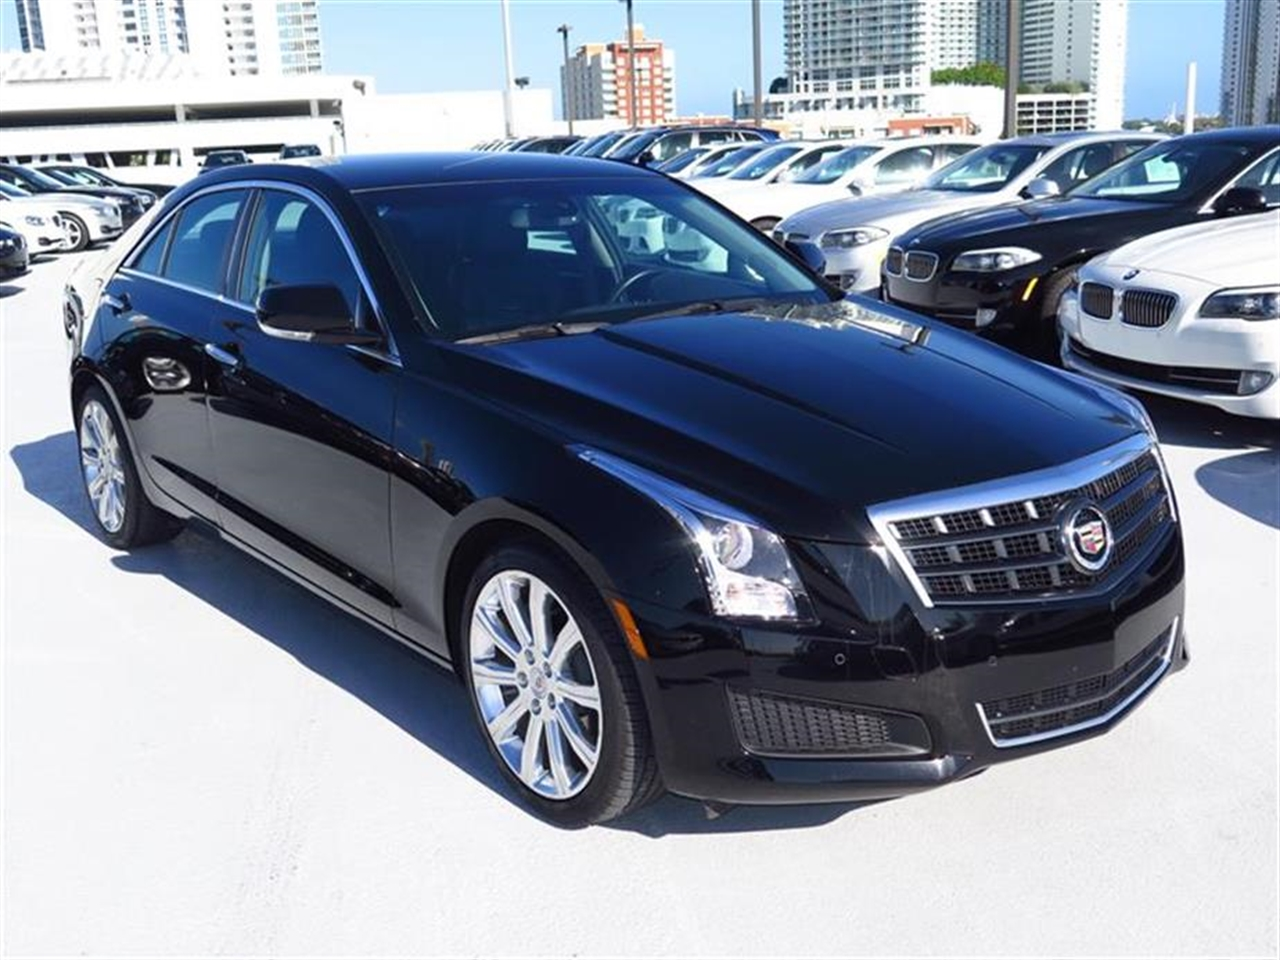 2013 CADILLAC ATS 4dr Sdn 20L Luxury RWD 8979 miles Adaptive Remote Start Not available with M